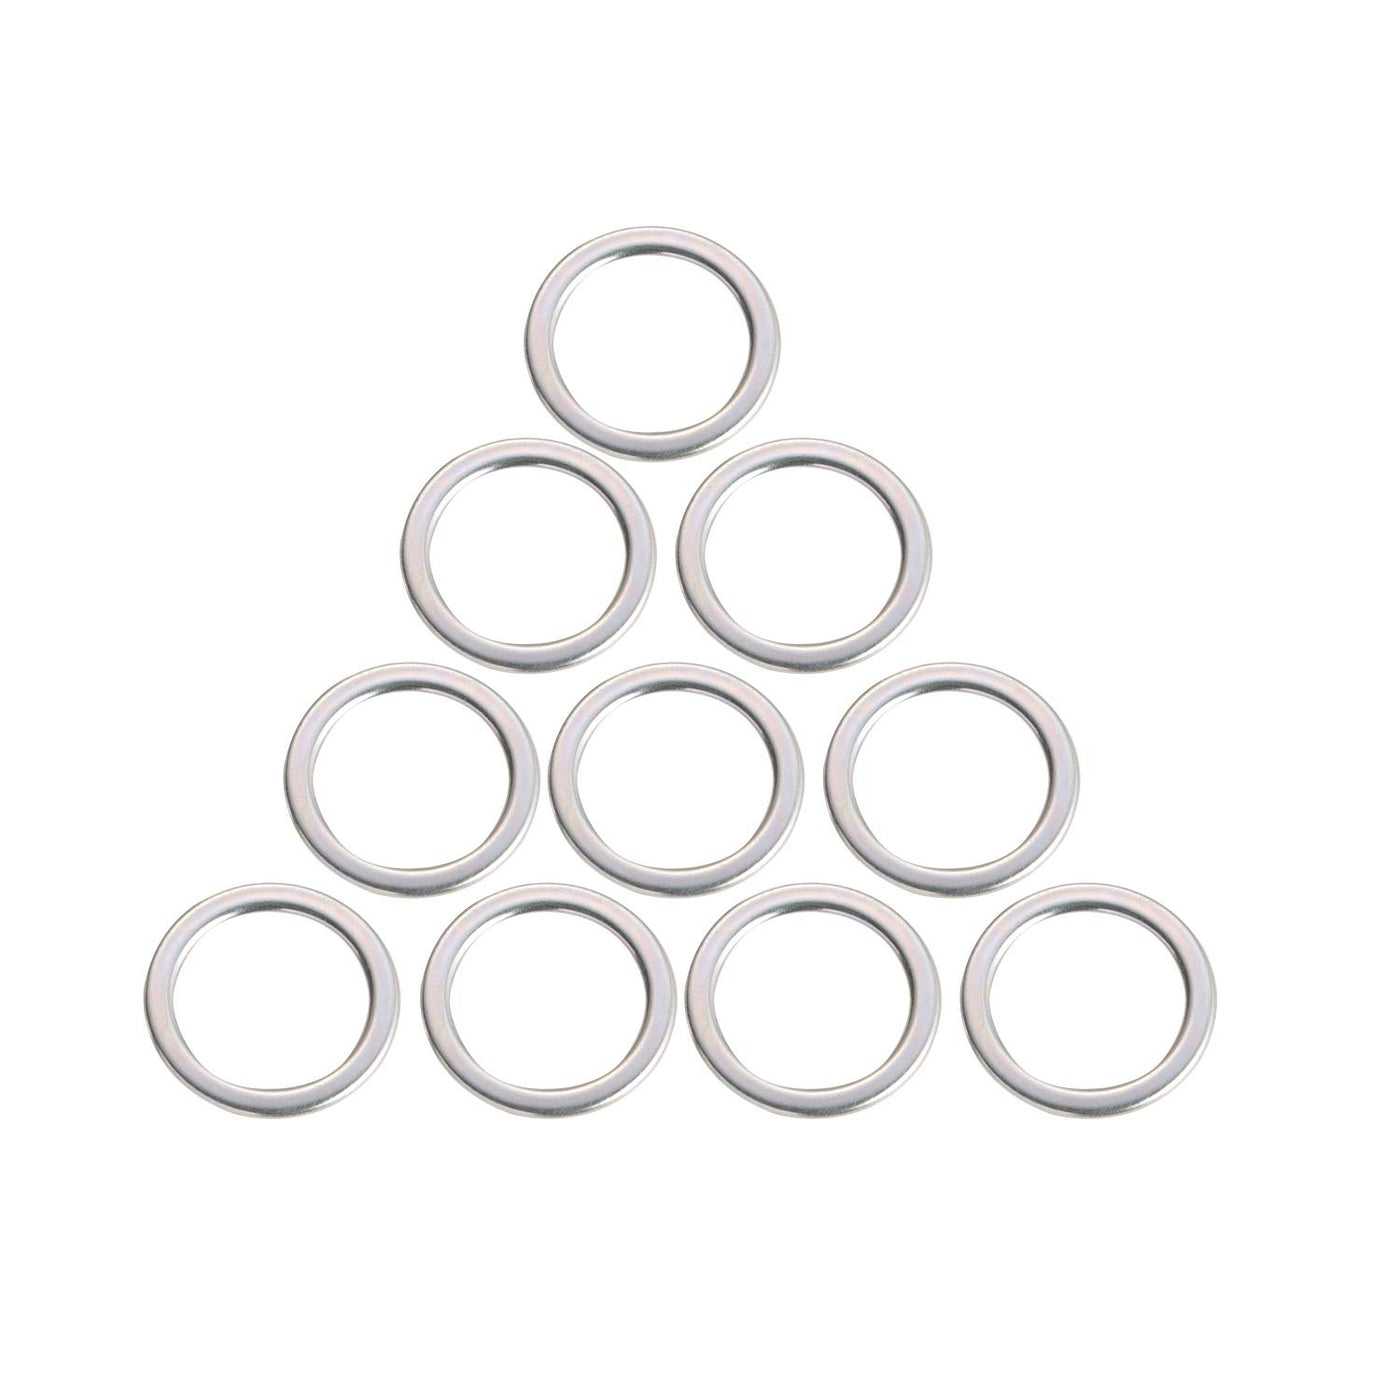 10pcs Differential Oil Drain Plug Crush Washers Gaskets